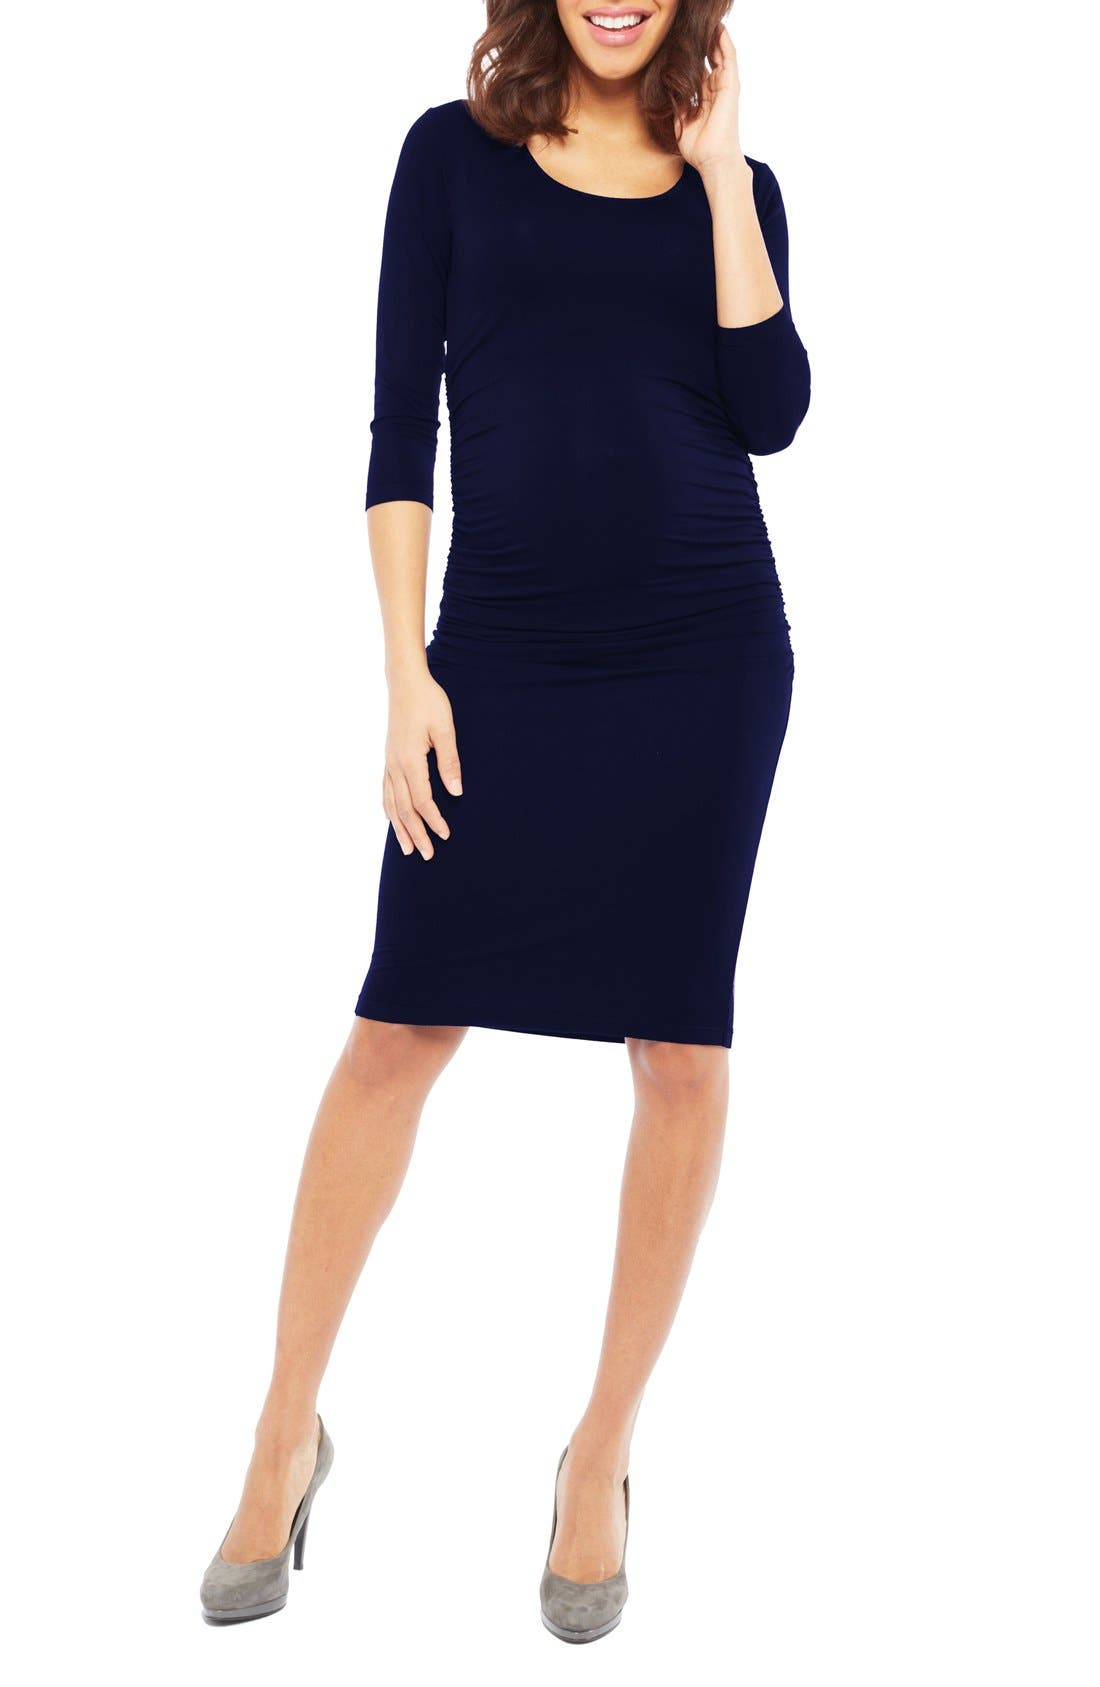 Nom 'Ellie' Ruched Maternity Dress